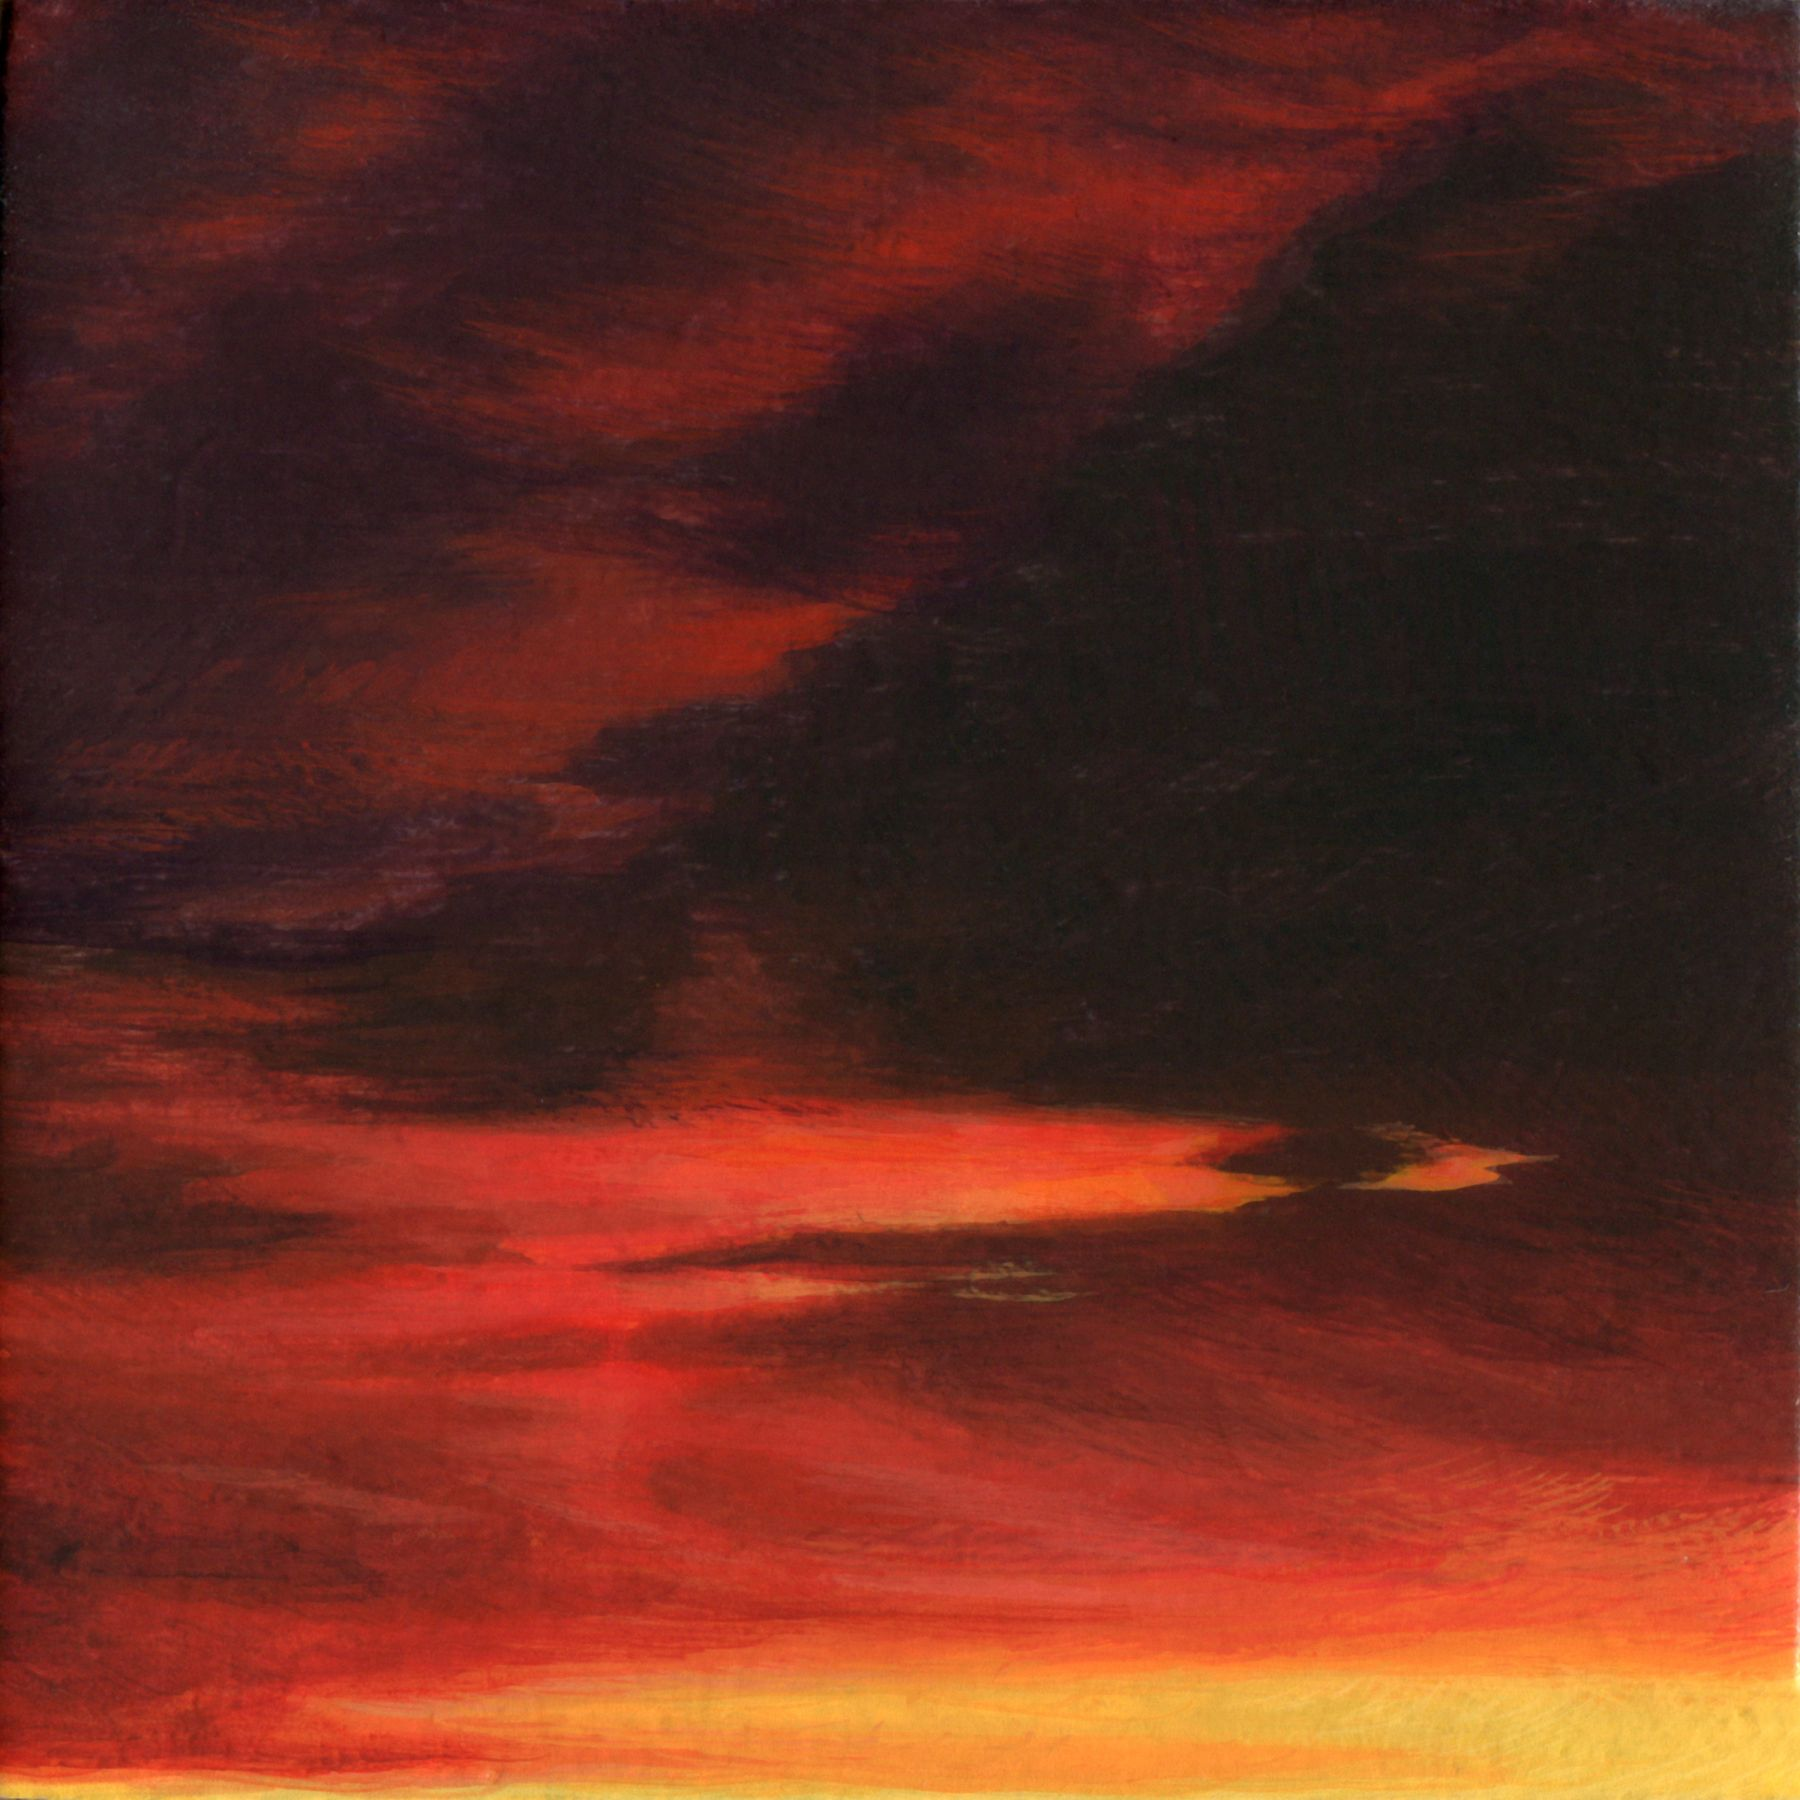 ADAM MYSOCK Red Sky in the Morning[Day One], 2017